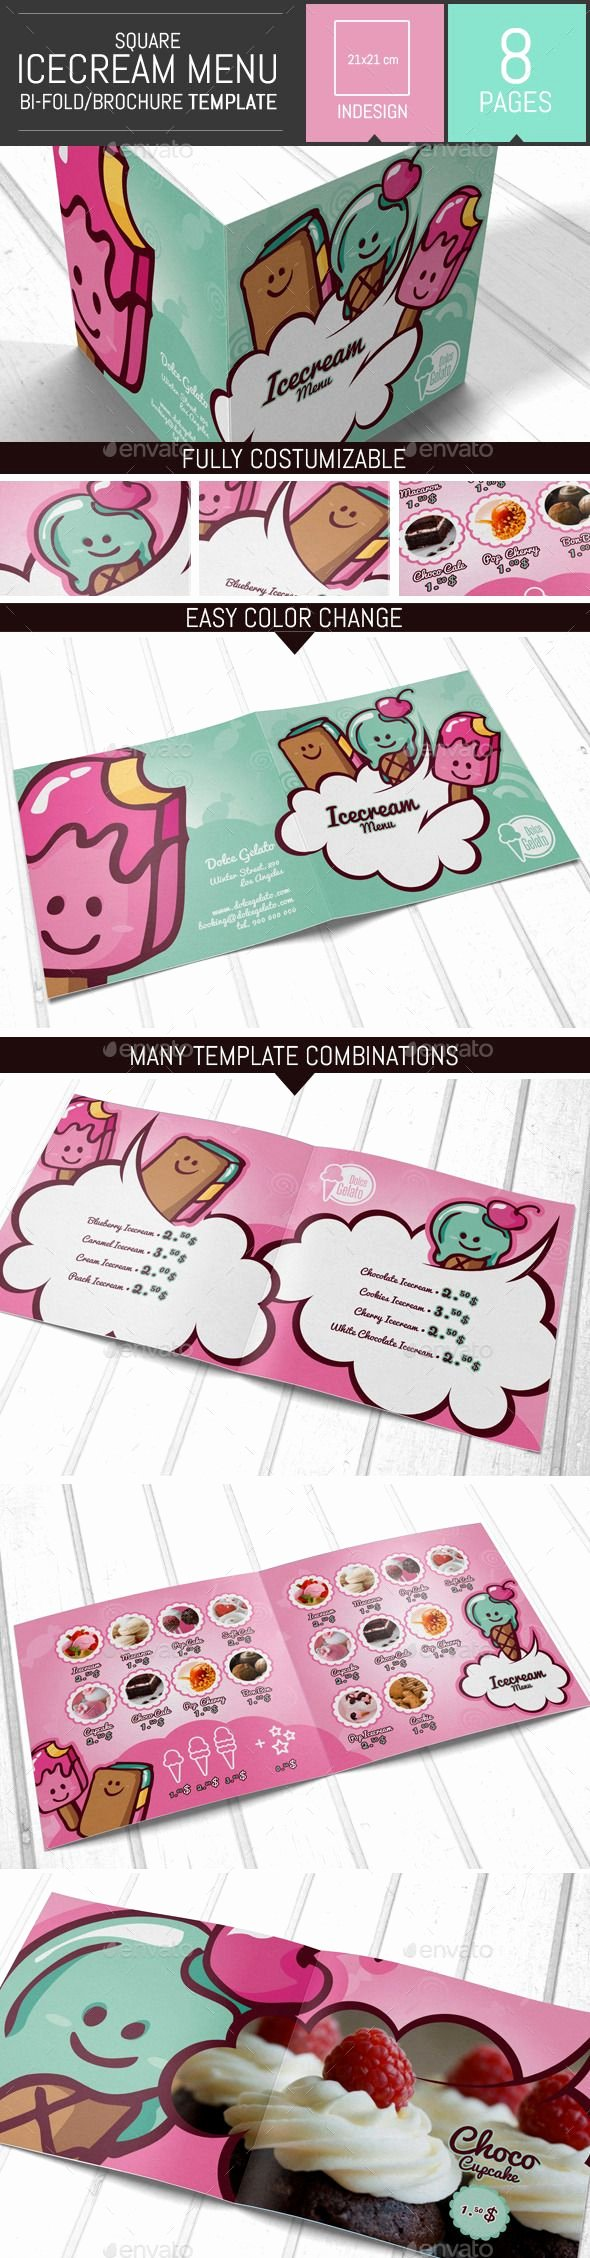 Ice Cream Menu Template Lovely Pin by Tareq Qarman On Brochure